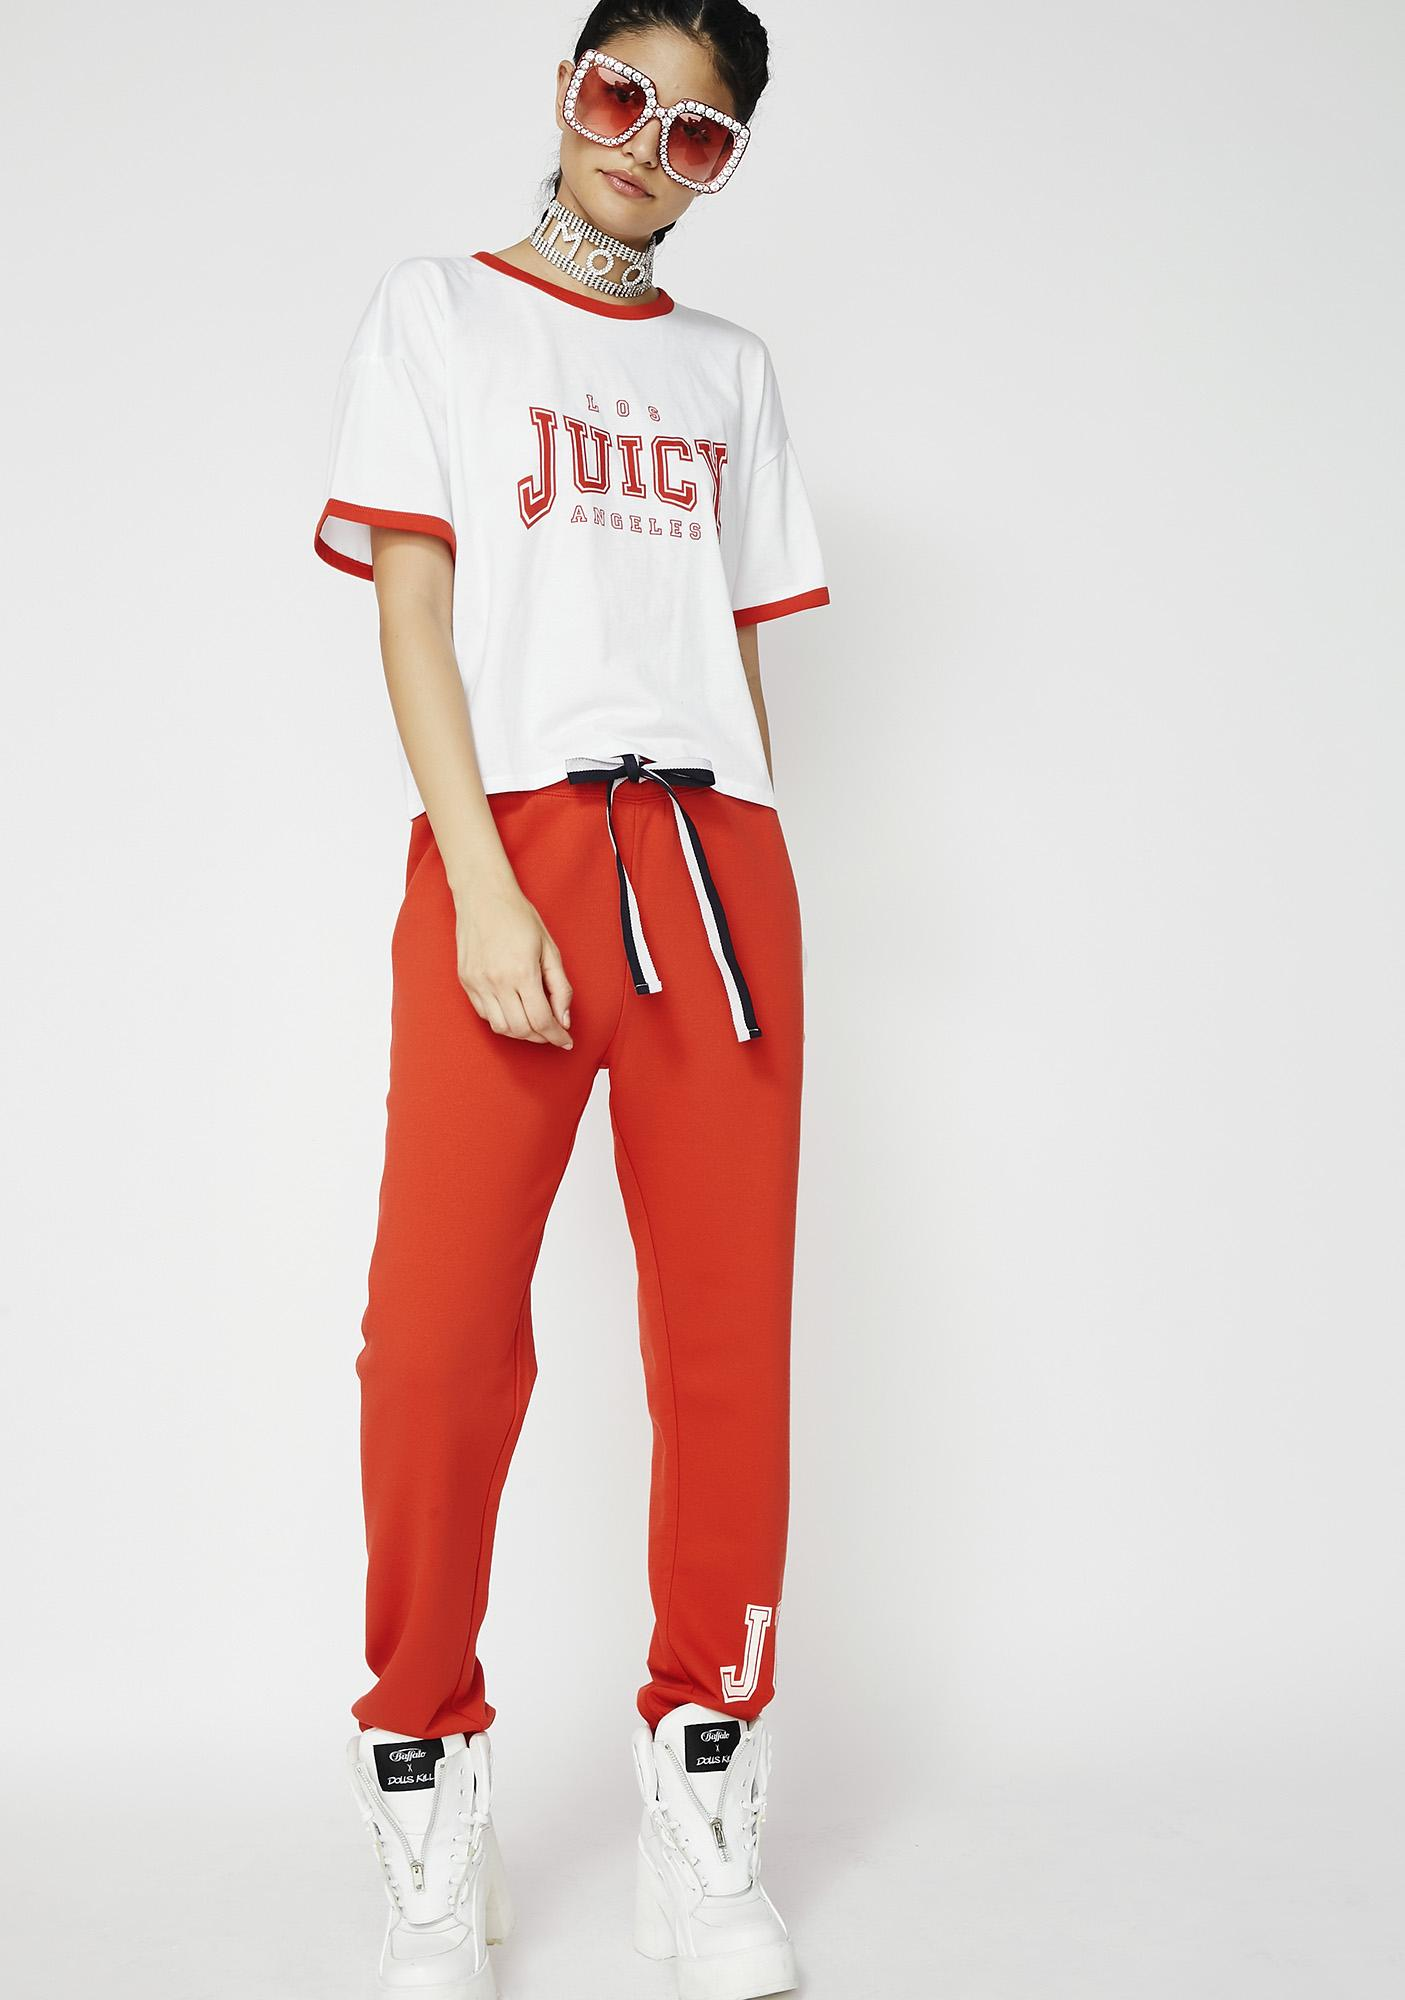 JUICY COUTURE Juicy LA Logo Graphic Tee